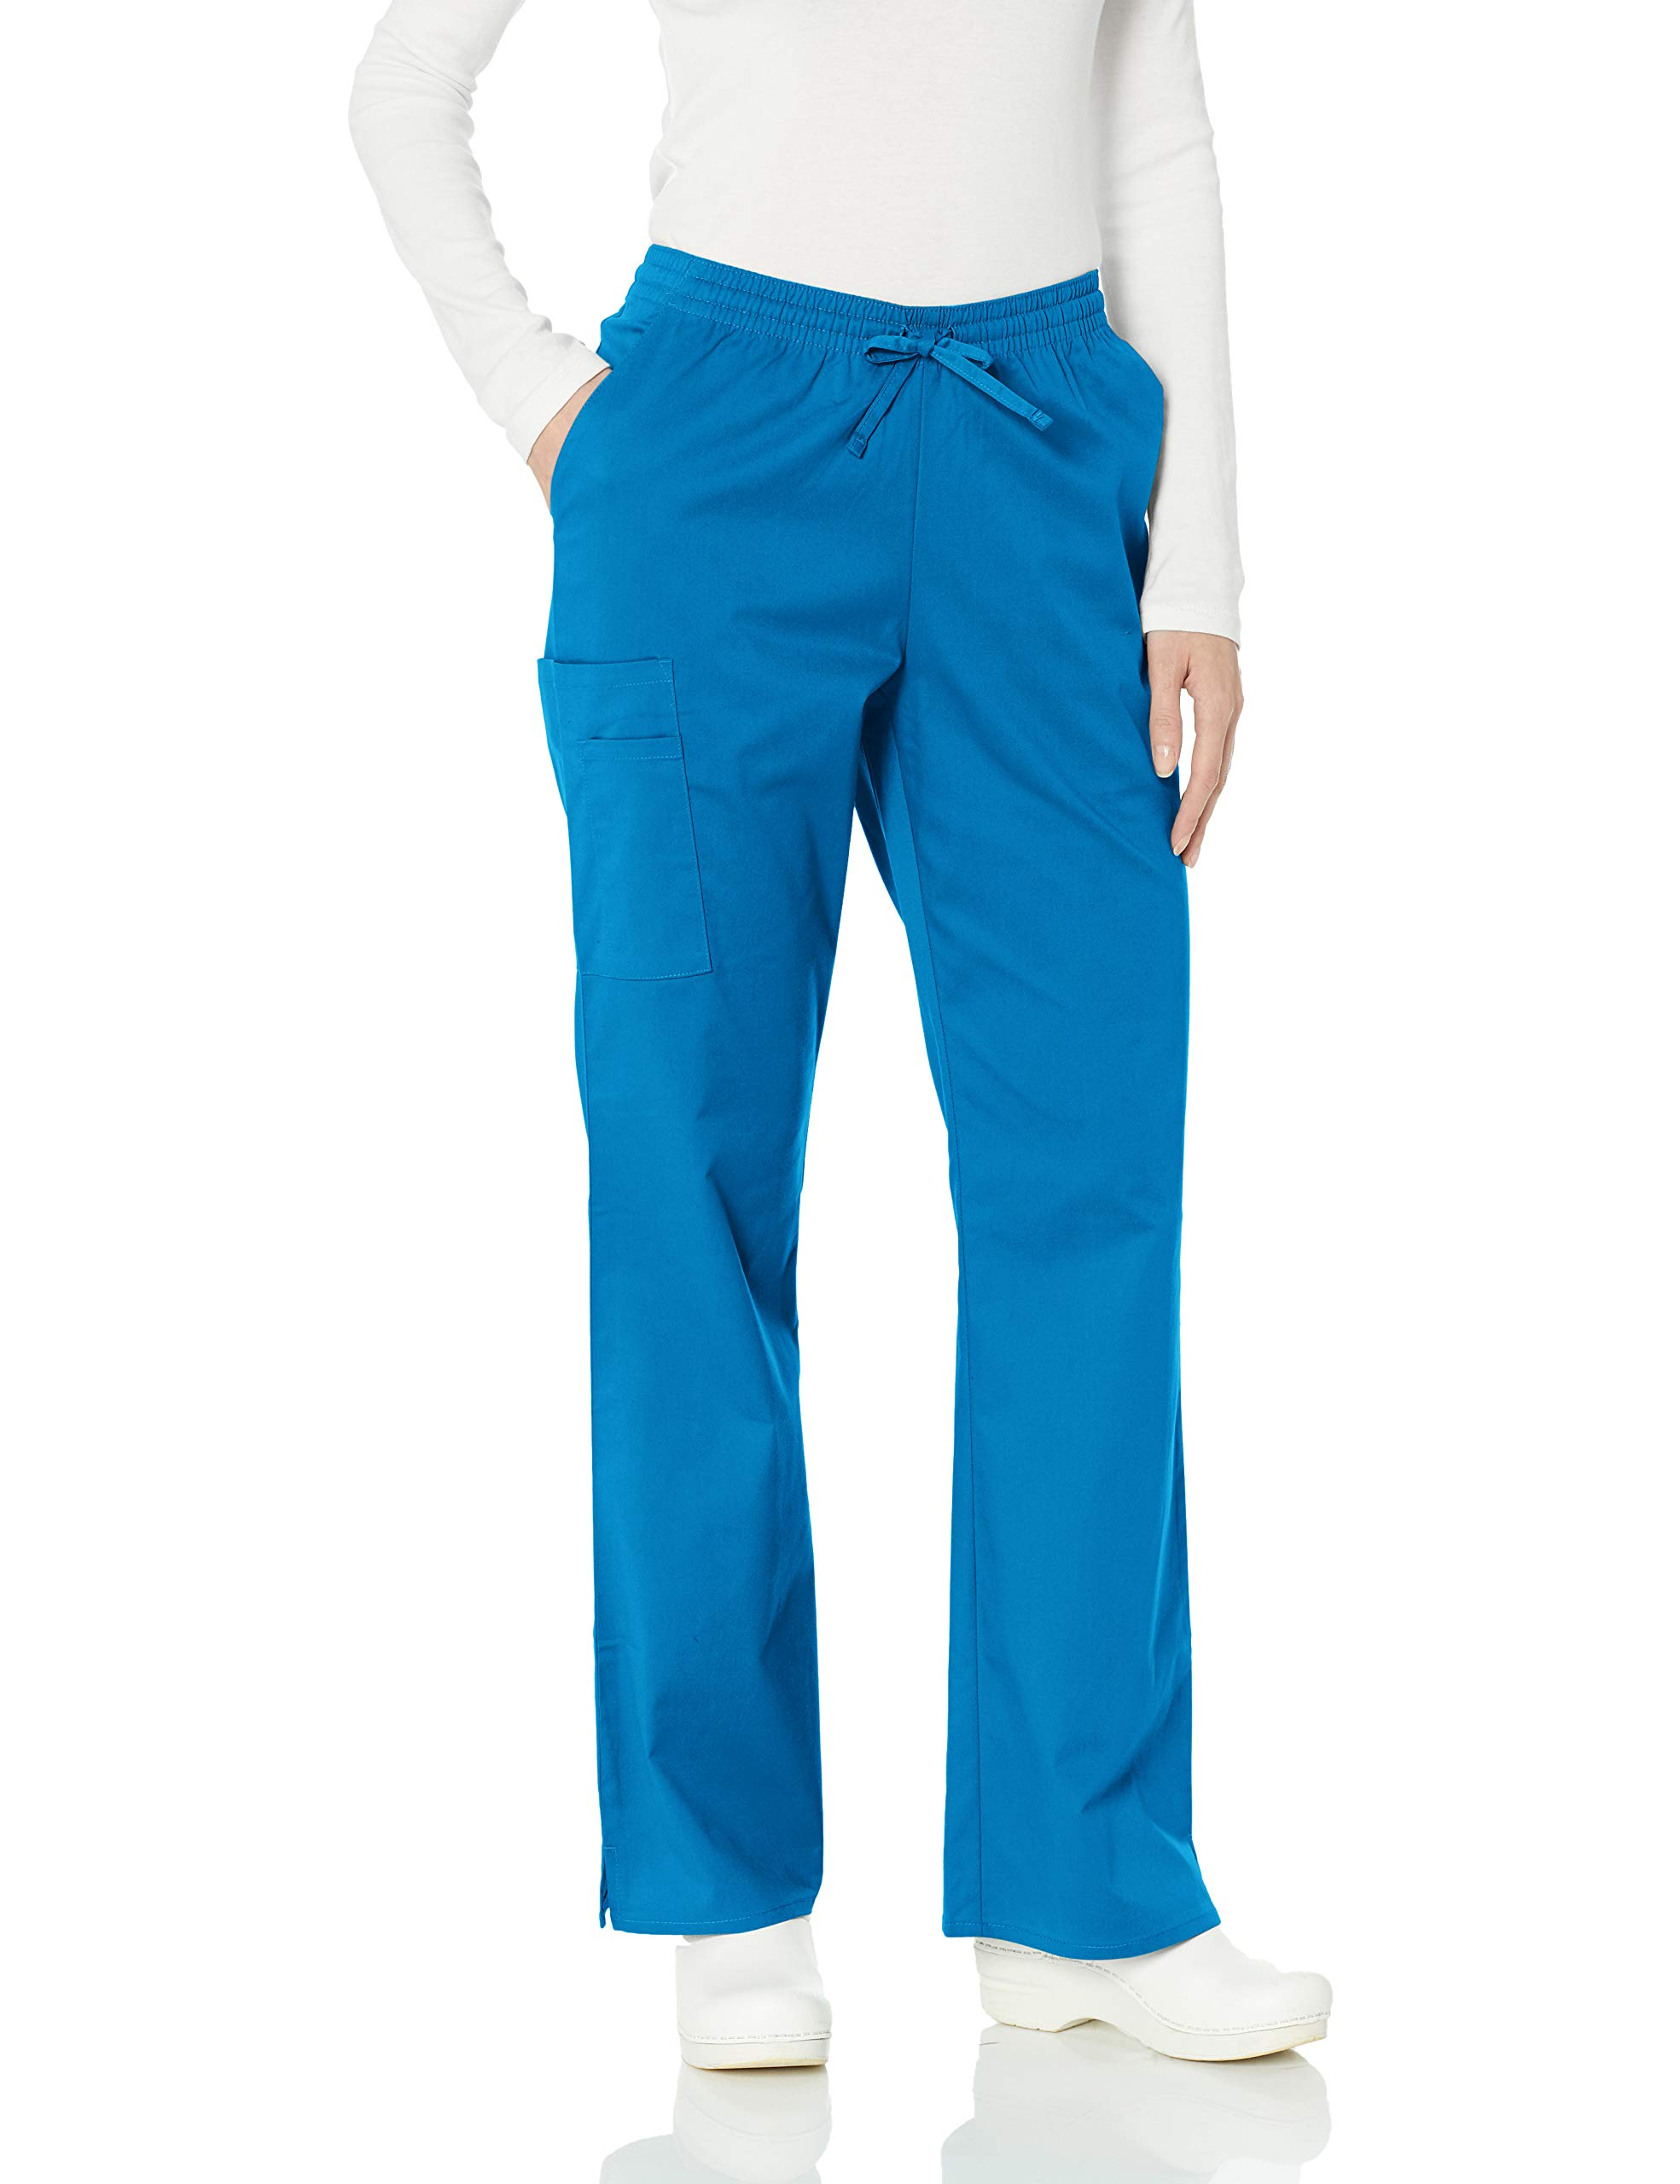 Amazon Essentials Women's Quick-Dry Stretch Scrub Pant, Royal Blue, X-Large